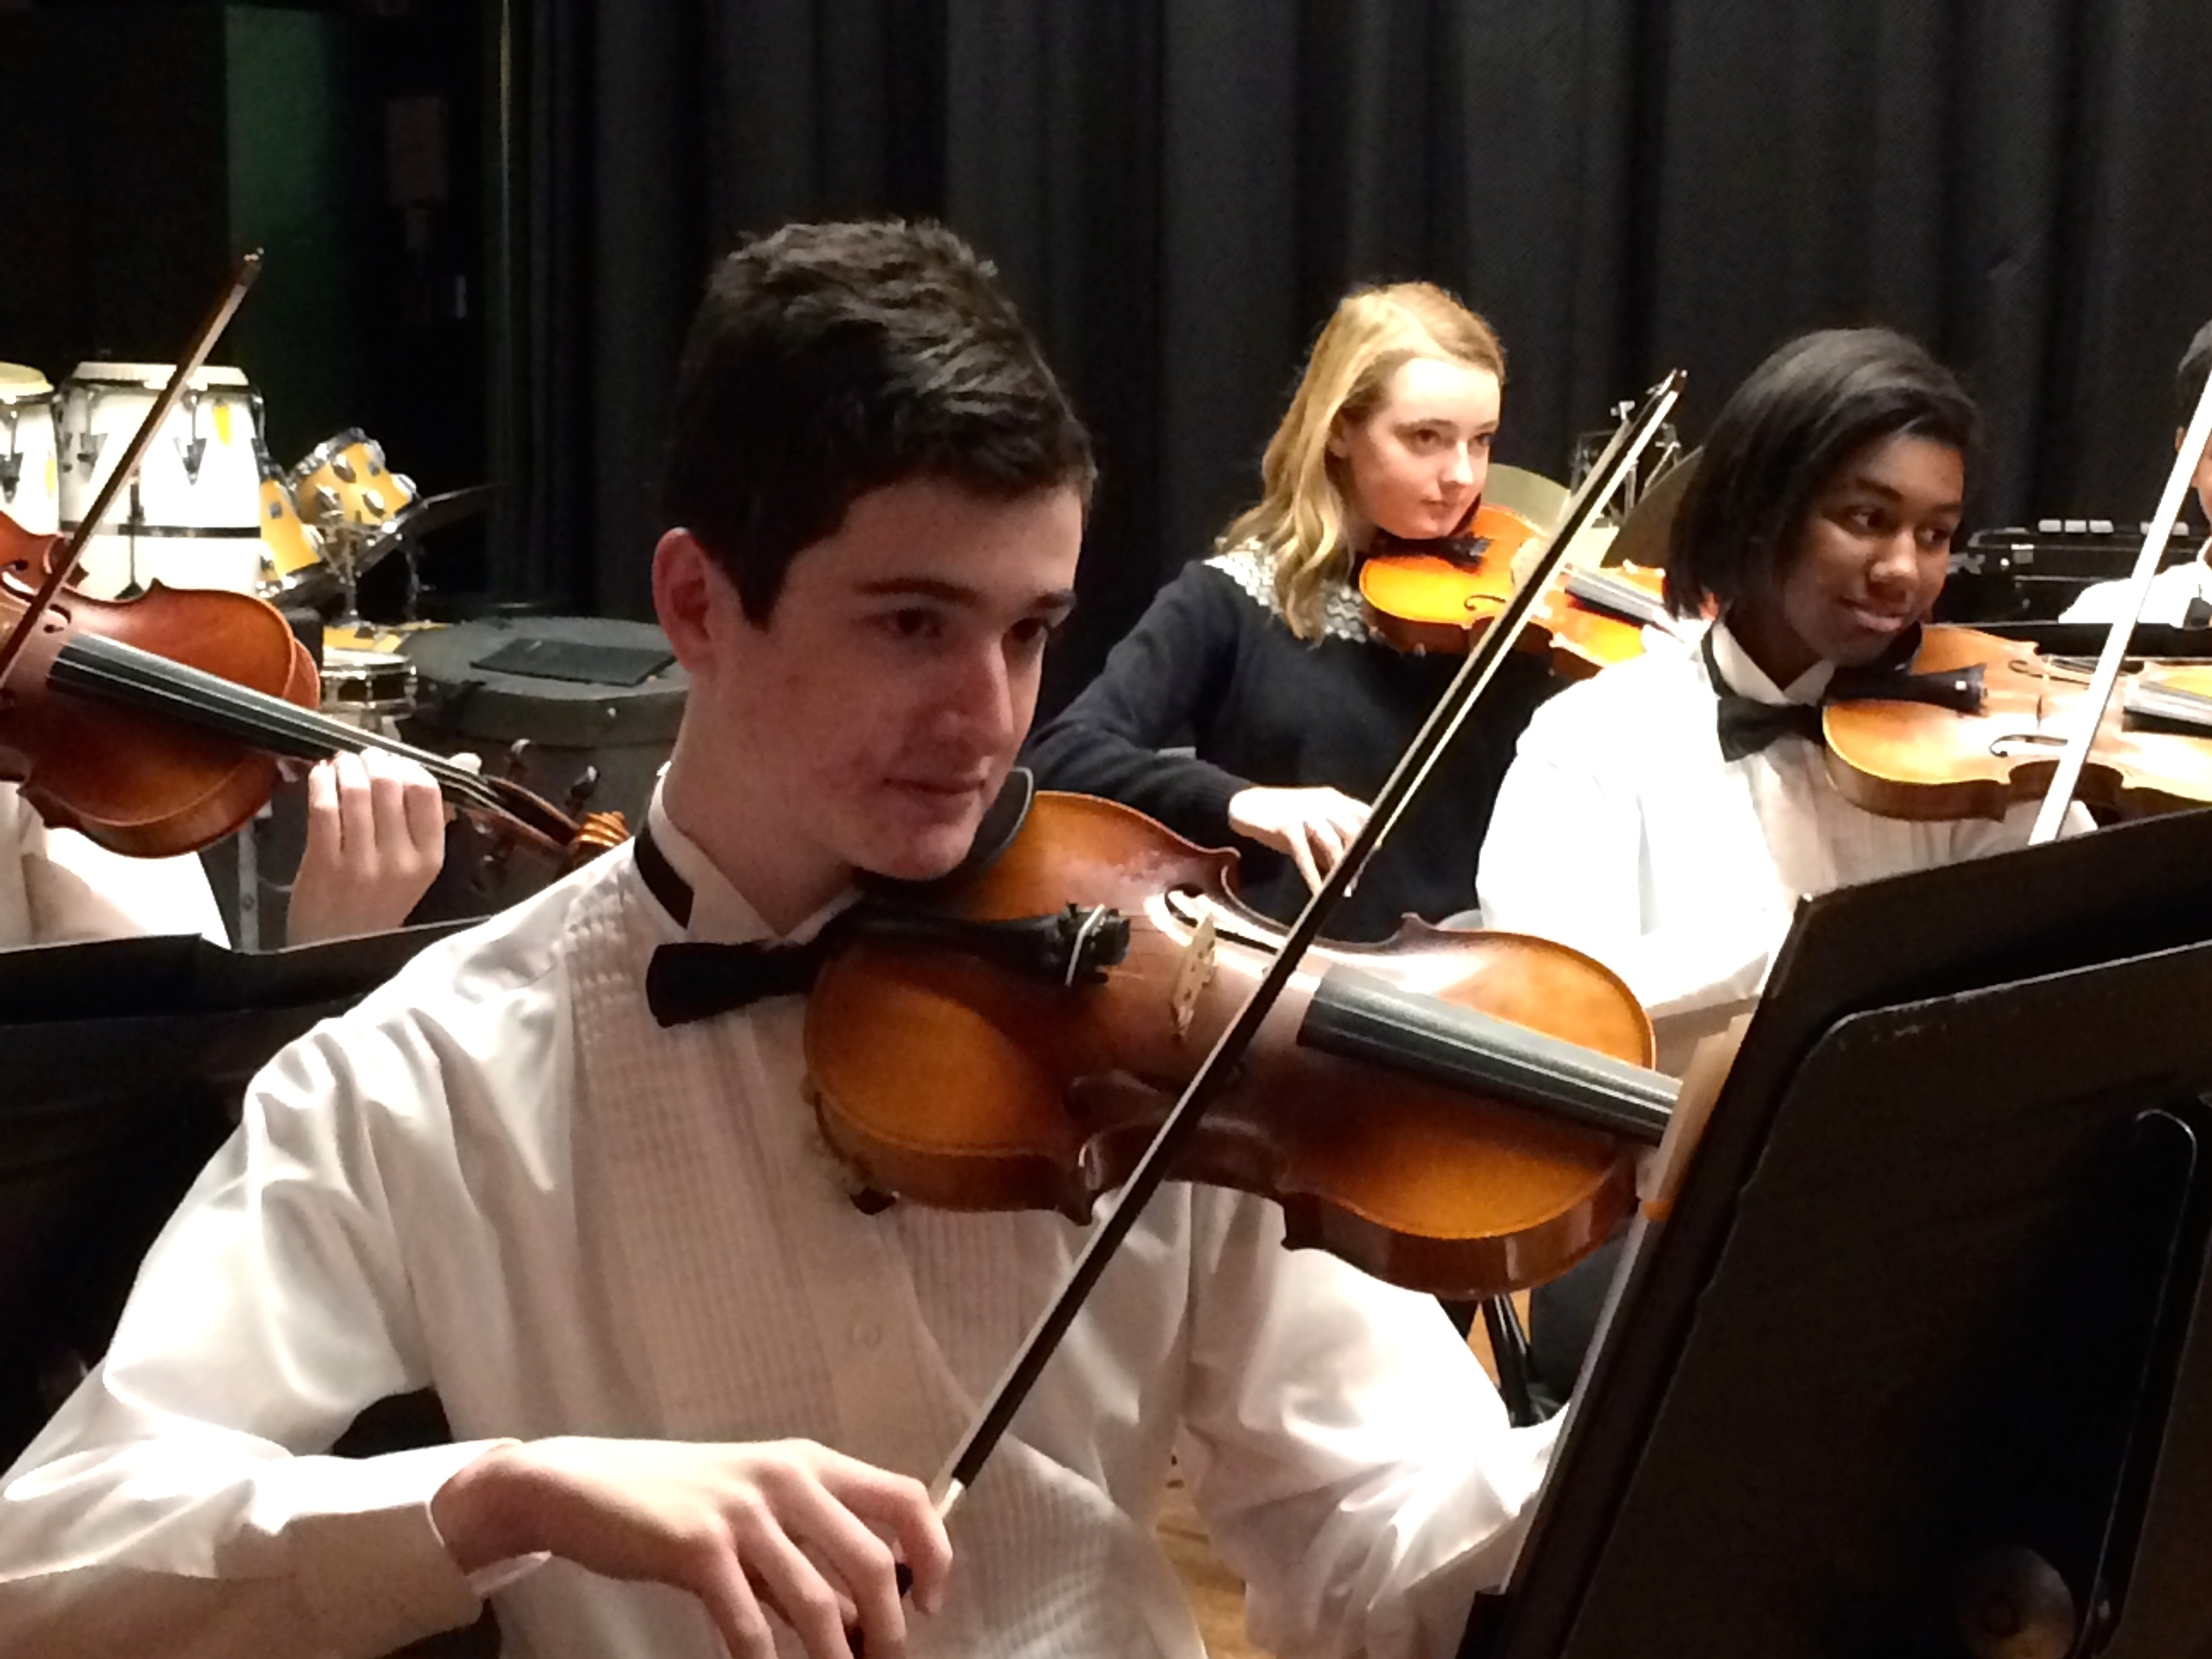 735107ea9a5f76272d05_1715ae1d9690cf0ffbc7_The_CHS_Chamber_Orchestra_opens_the_CMS_program.jpg